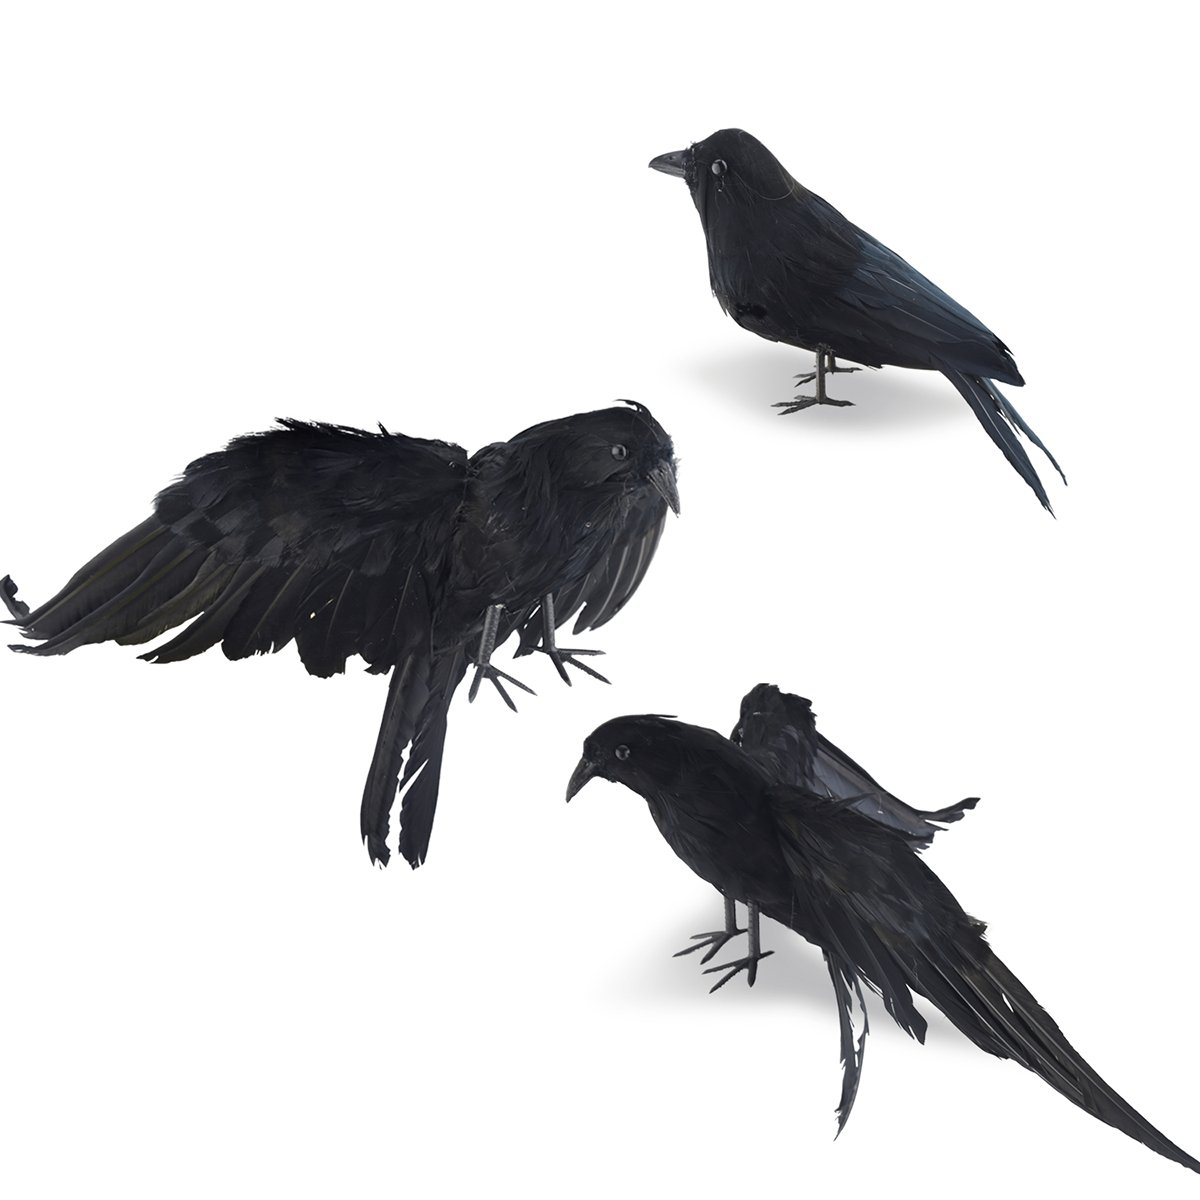 IMOSA Halloween Realistic Handmade Crow Prop 3 Pack Black Feathered Crow Fly and Stand Crows Ravens For Outdoors and Indoors Crow Decoration